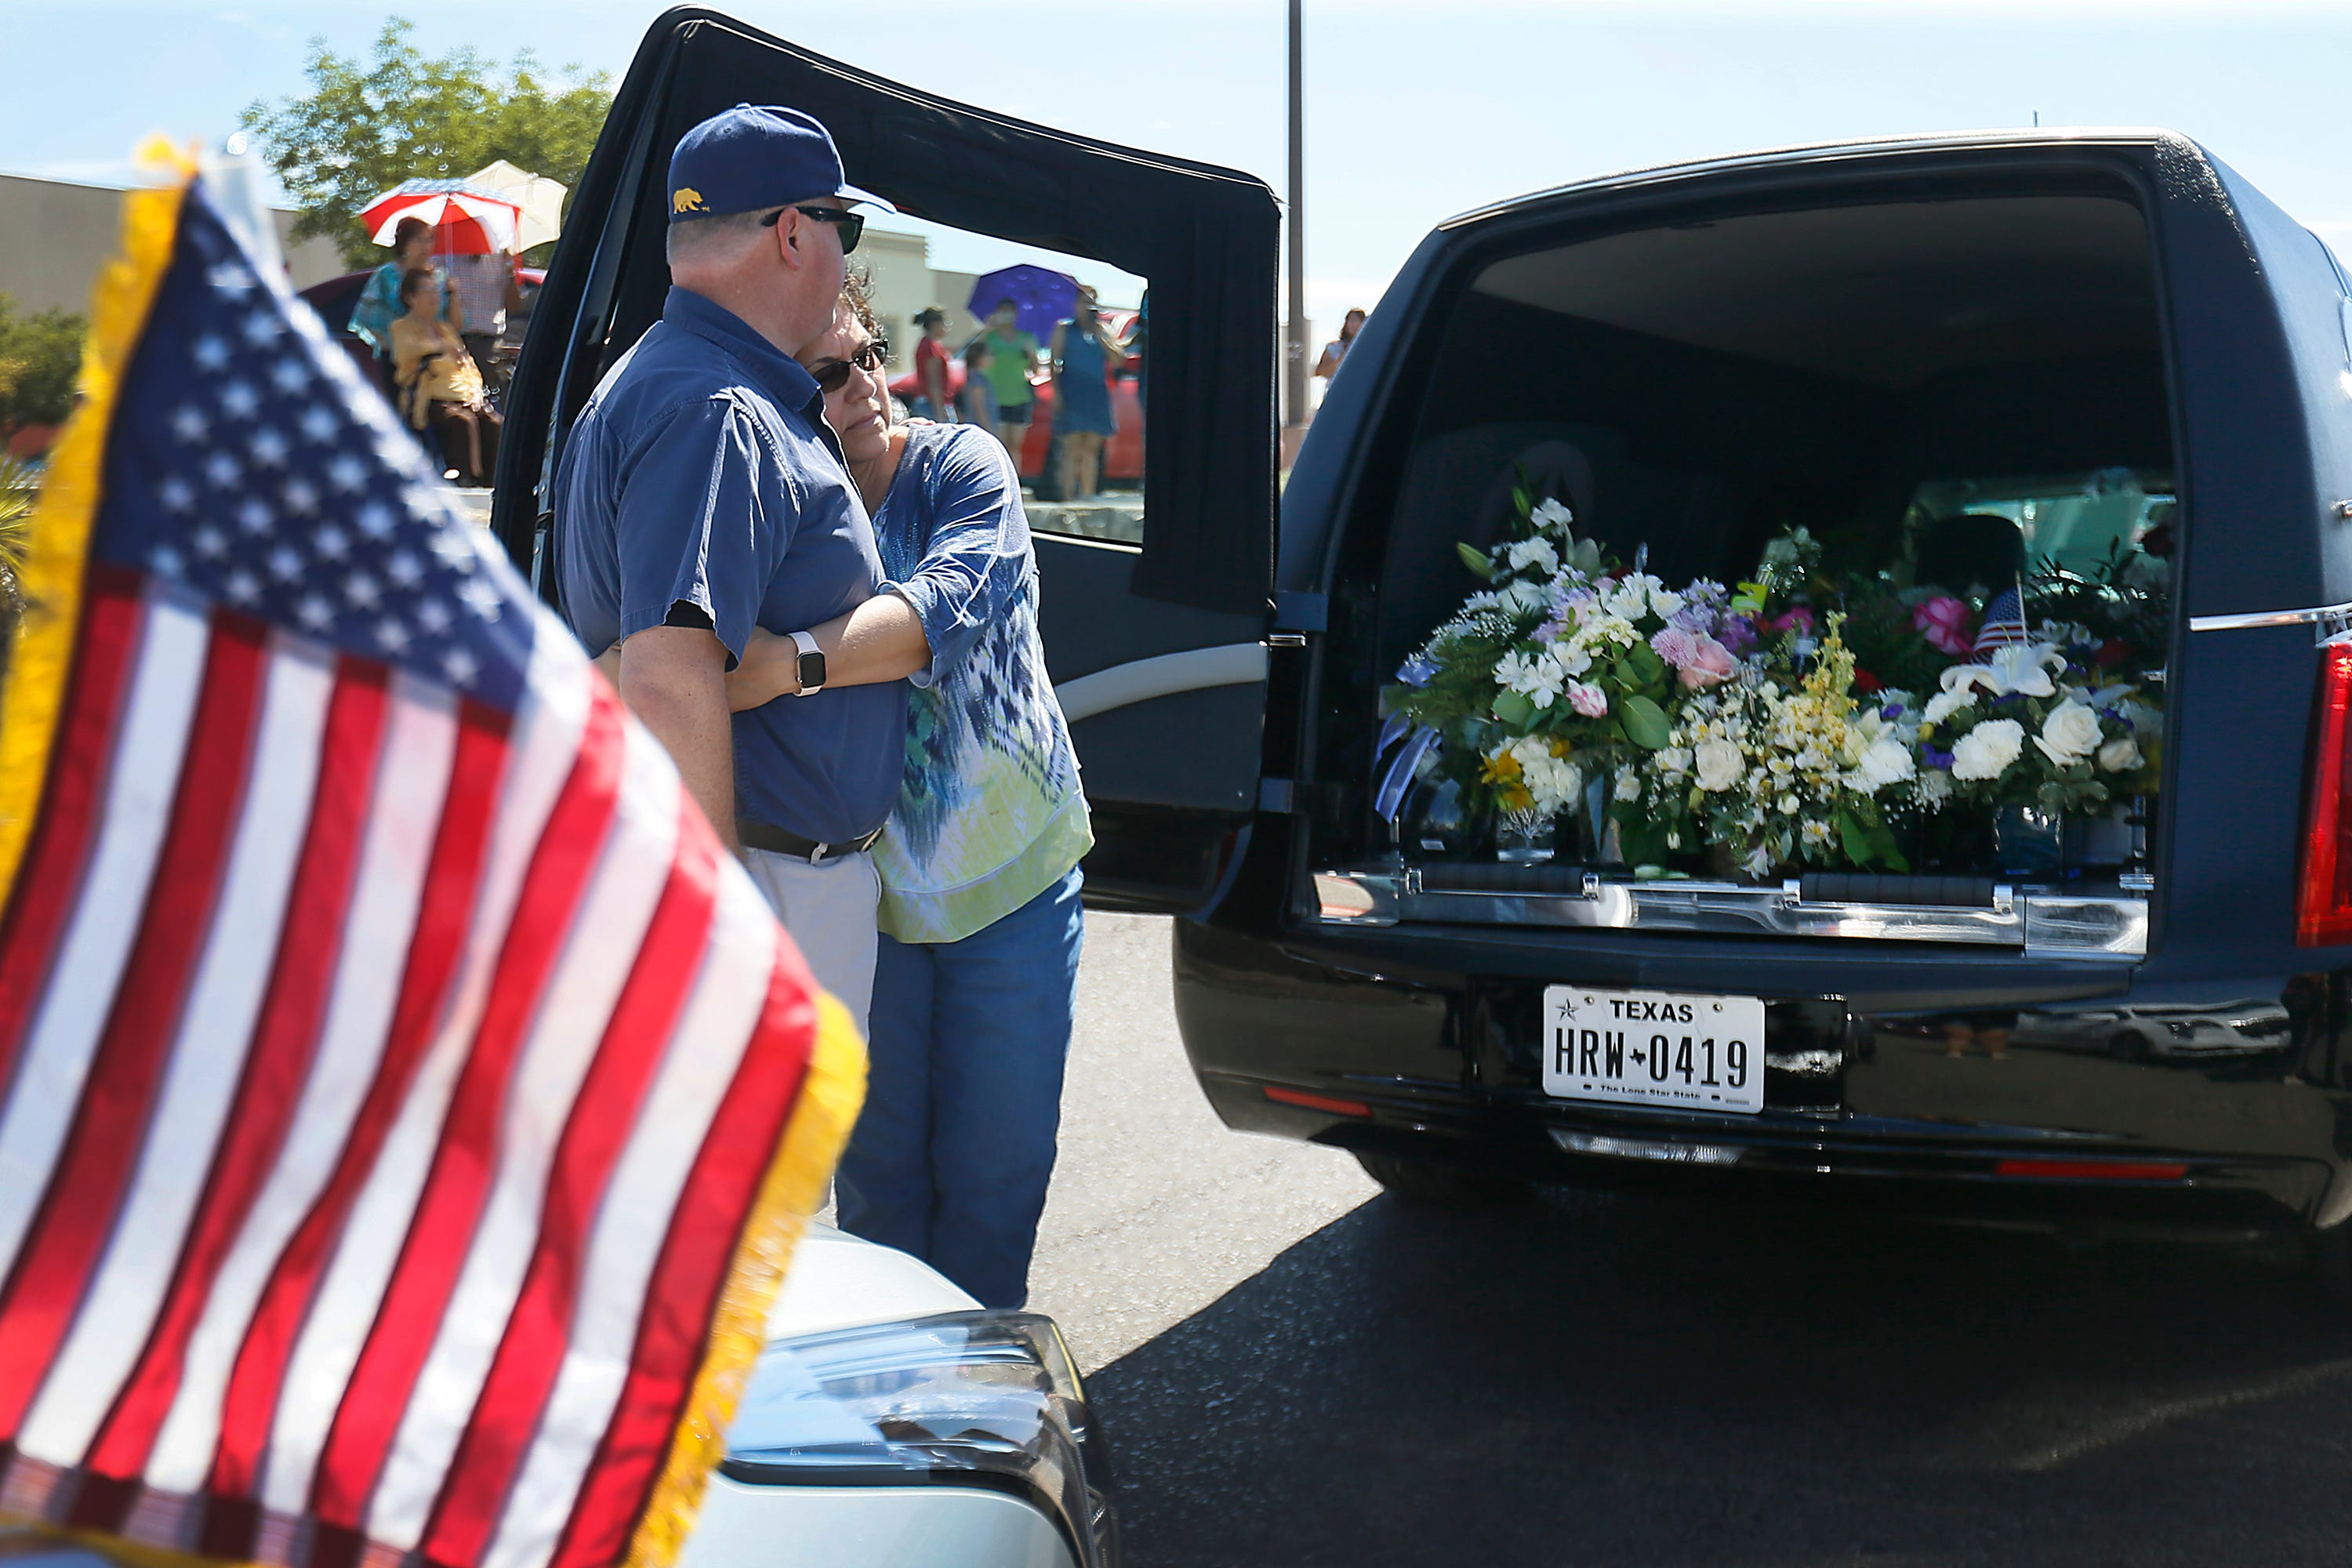 Walmart shooting victims honored with 22 hearse procession in El Paso